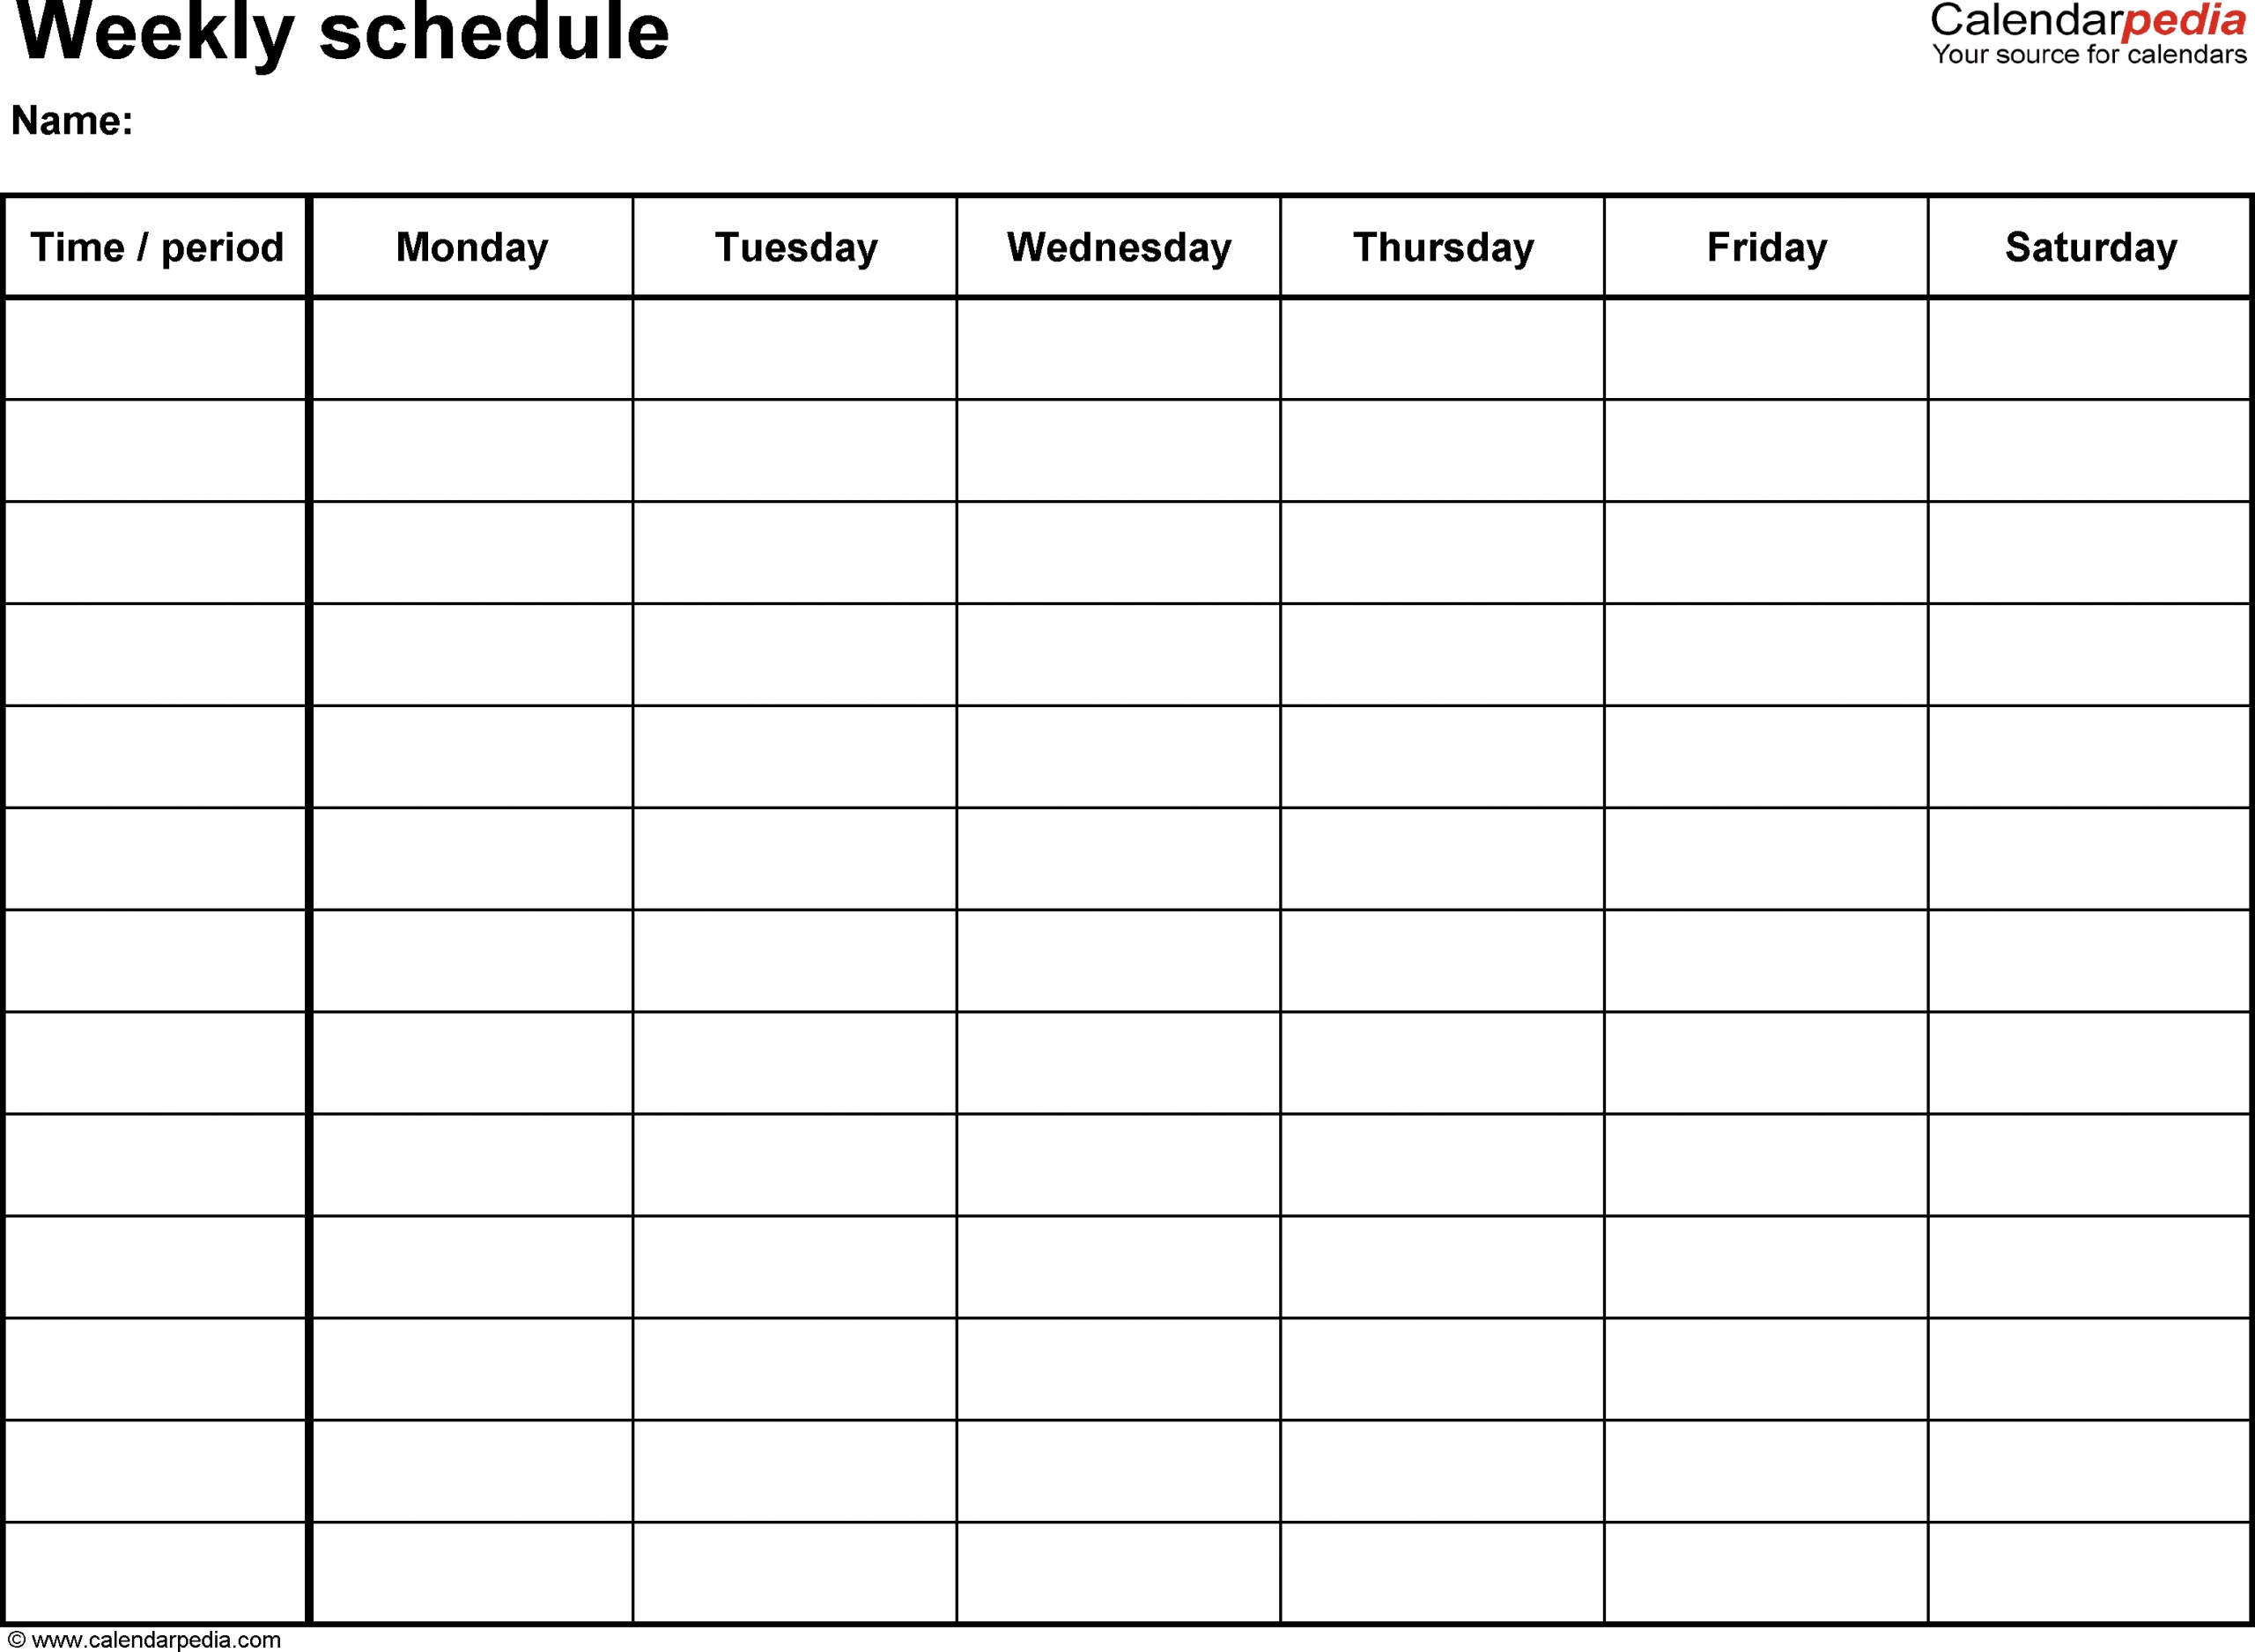 Collect Apointment Schedule For Monday - Friday